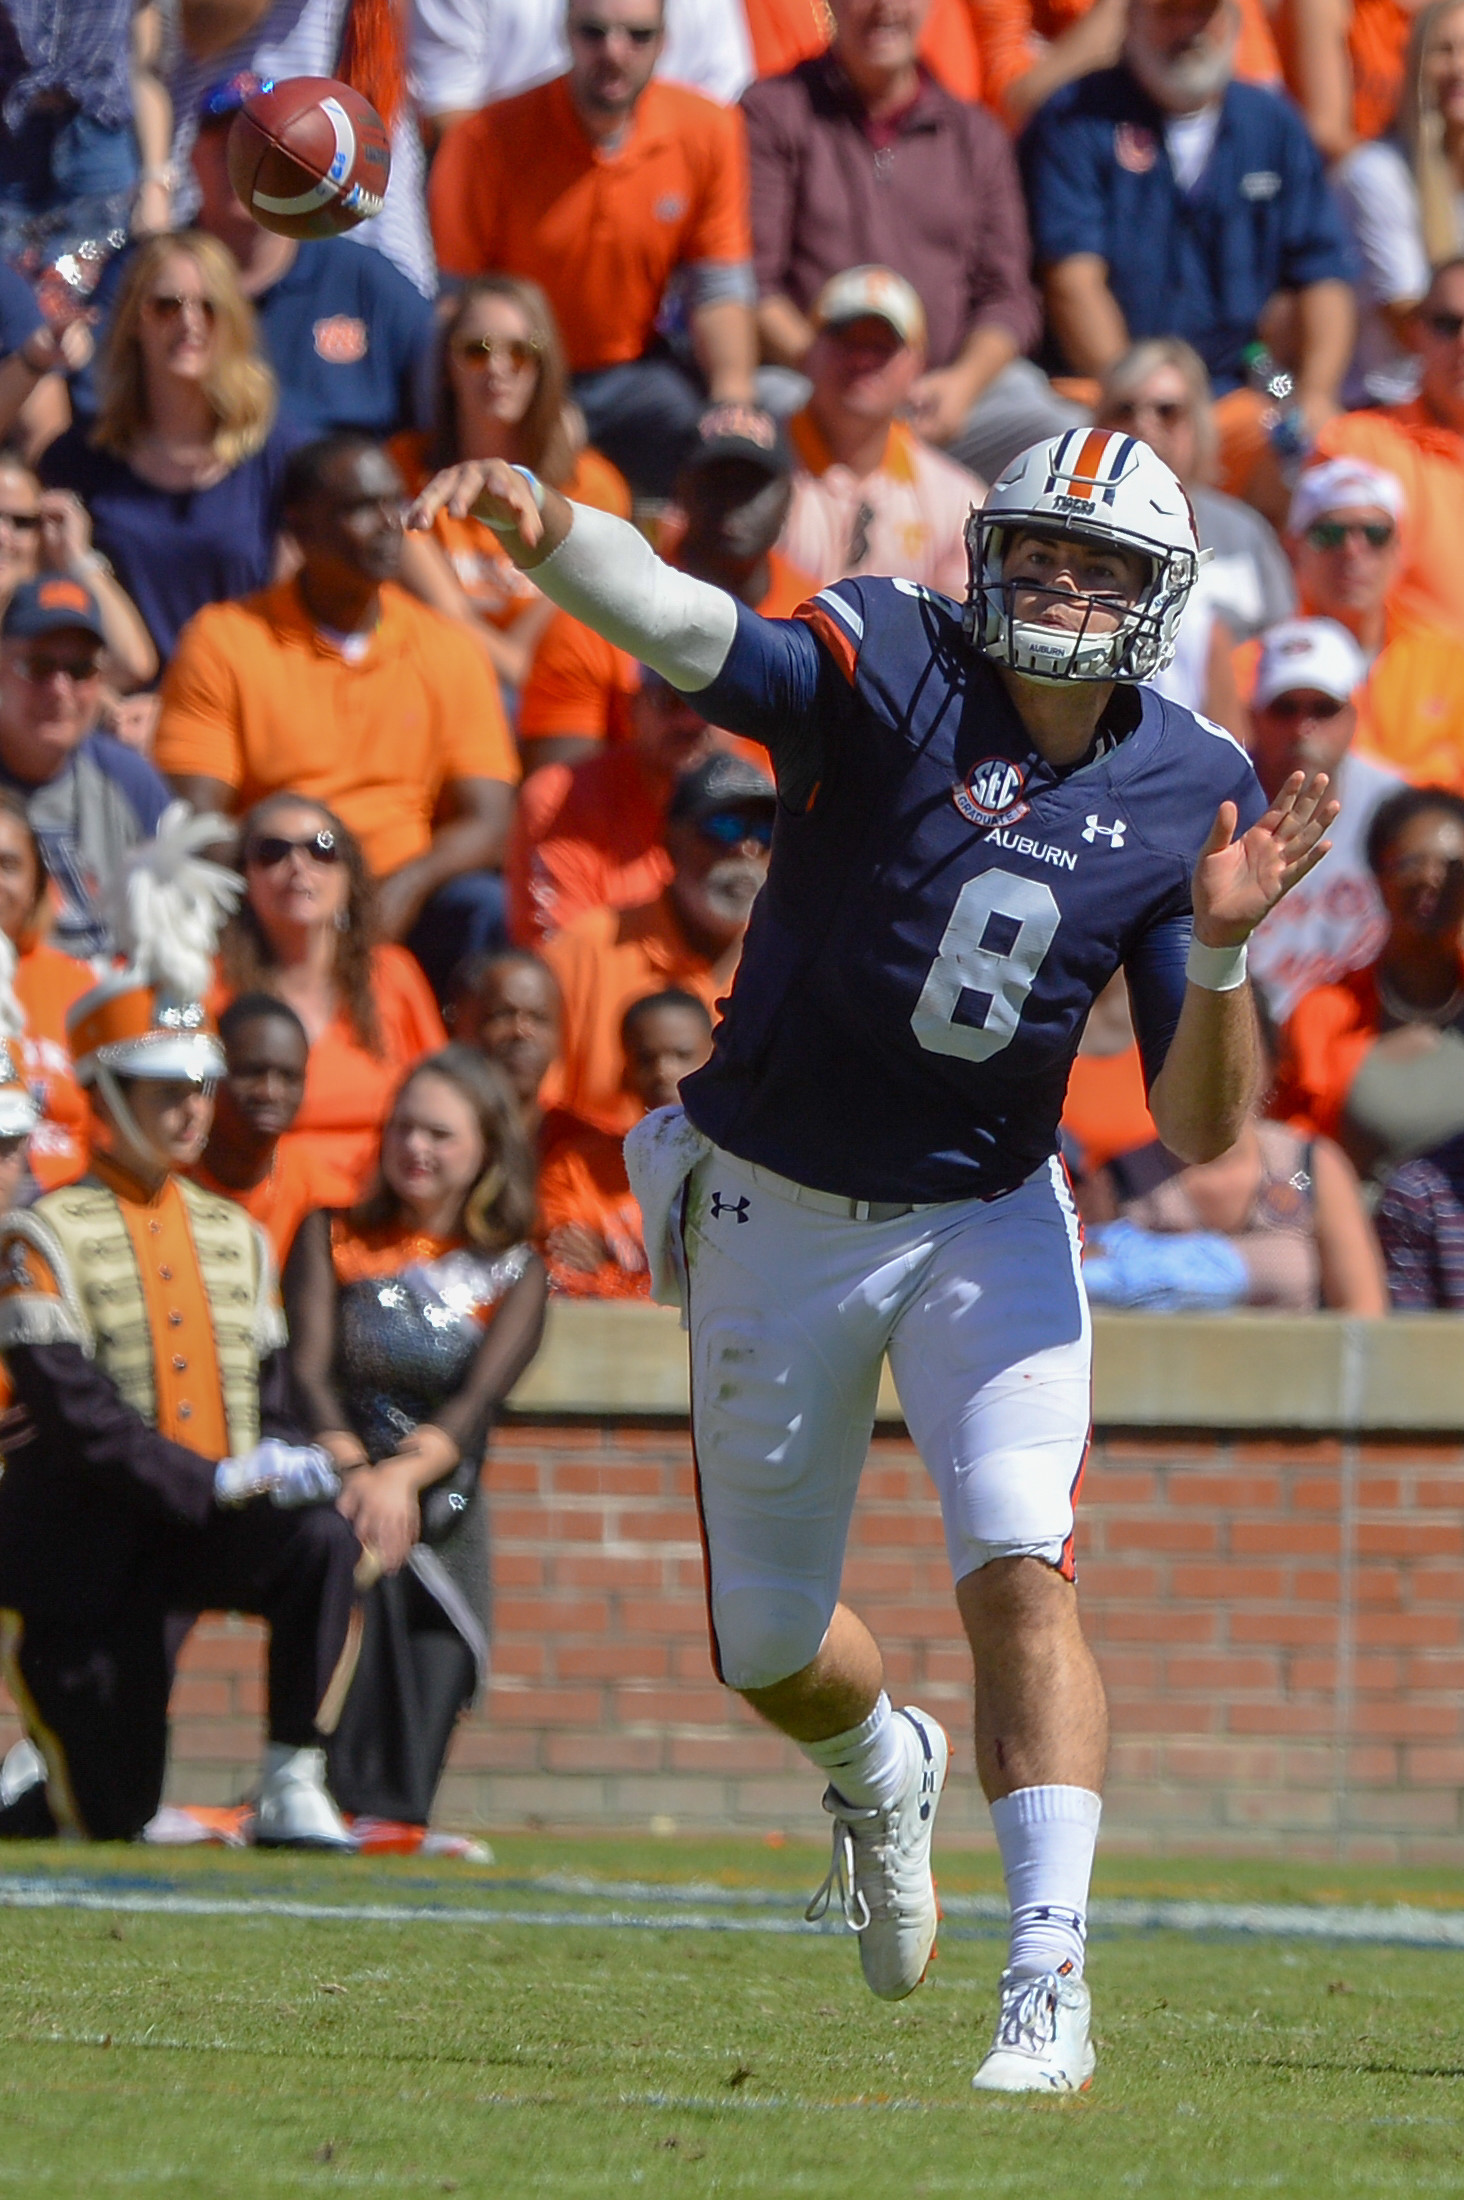 Auburn Tigers quarterback Jarrett Stidham (8) throws a pass during the first half of Saturday's game, at Jordan-Hare Stadium in Auburn, AL. Daily Mountain Eagle -  Jeff Johnsey